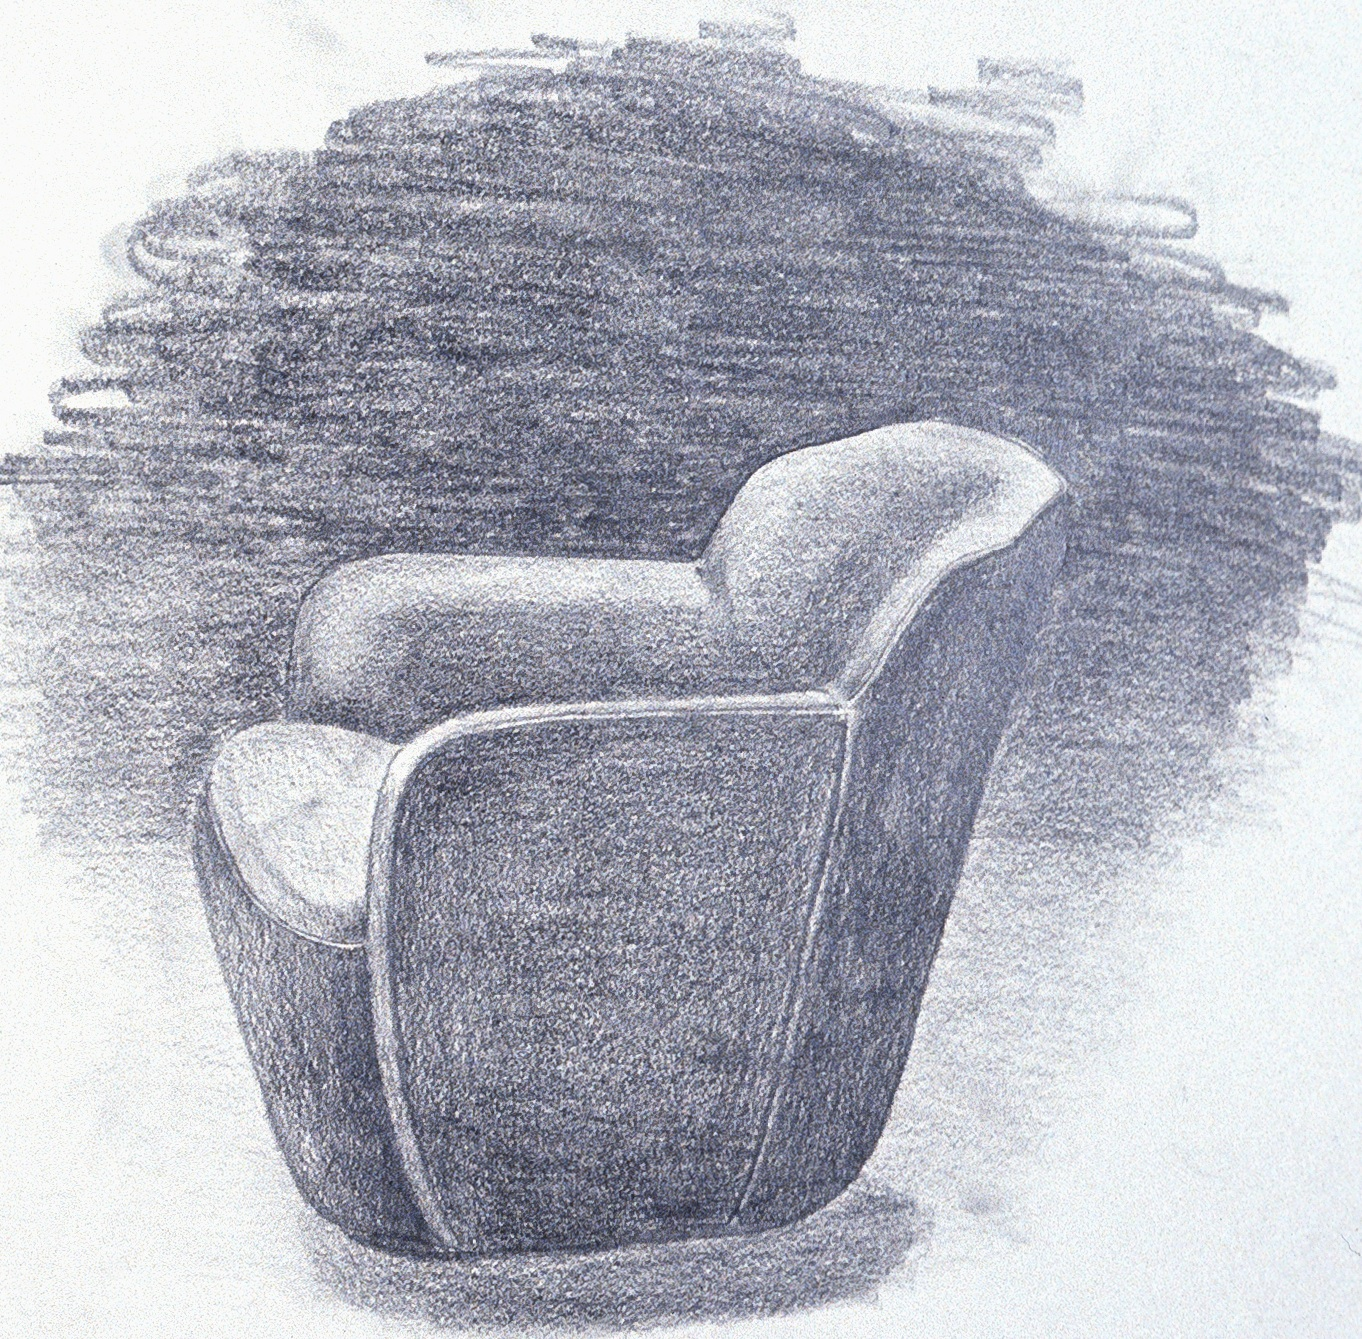 tiffany_hicks_design_black_and_white_chair.jpg